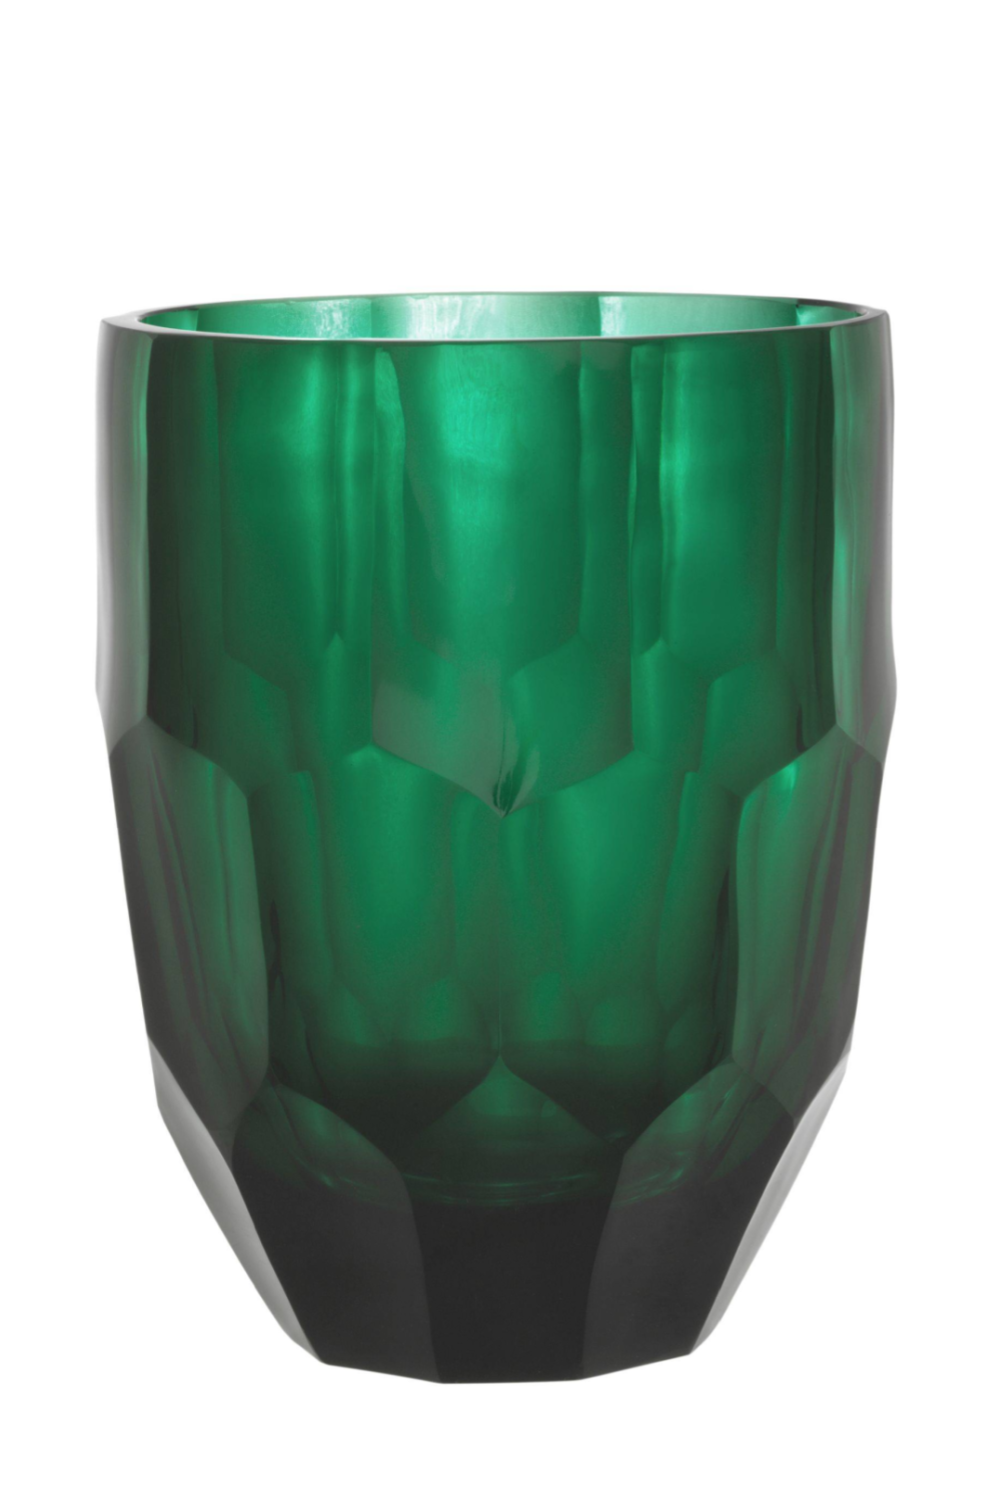 Emerald Vase - S | Eichholtz Mughal | OROA Modern & Luxury Furniture